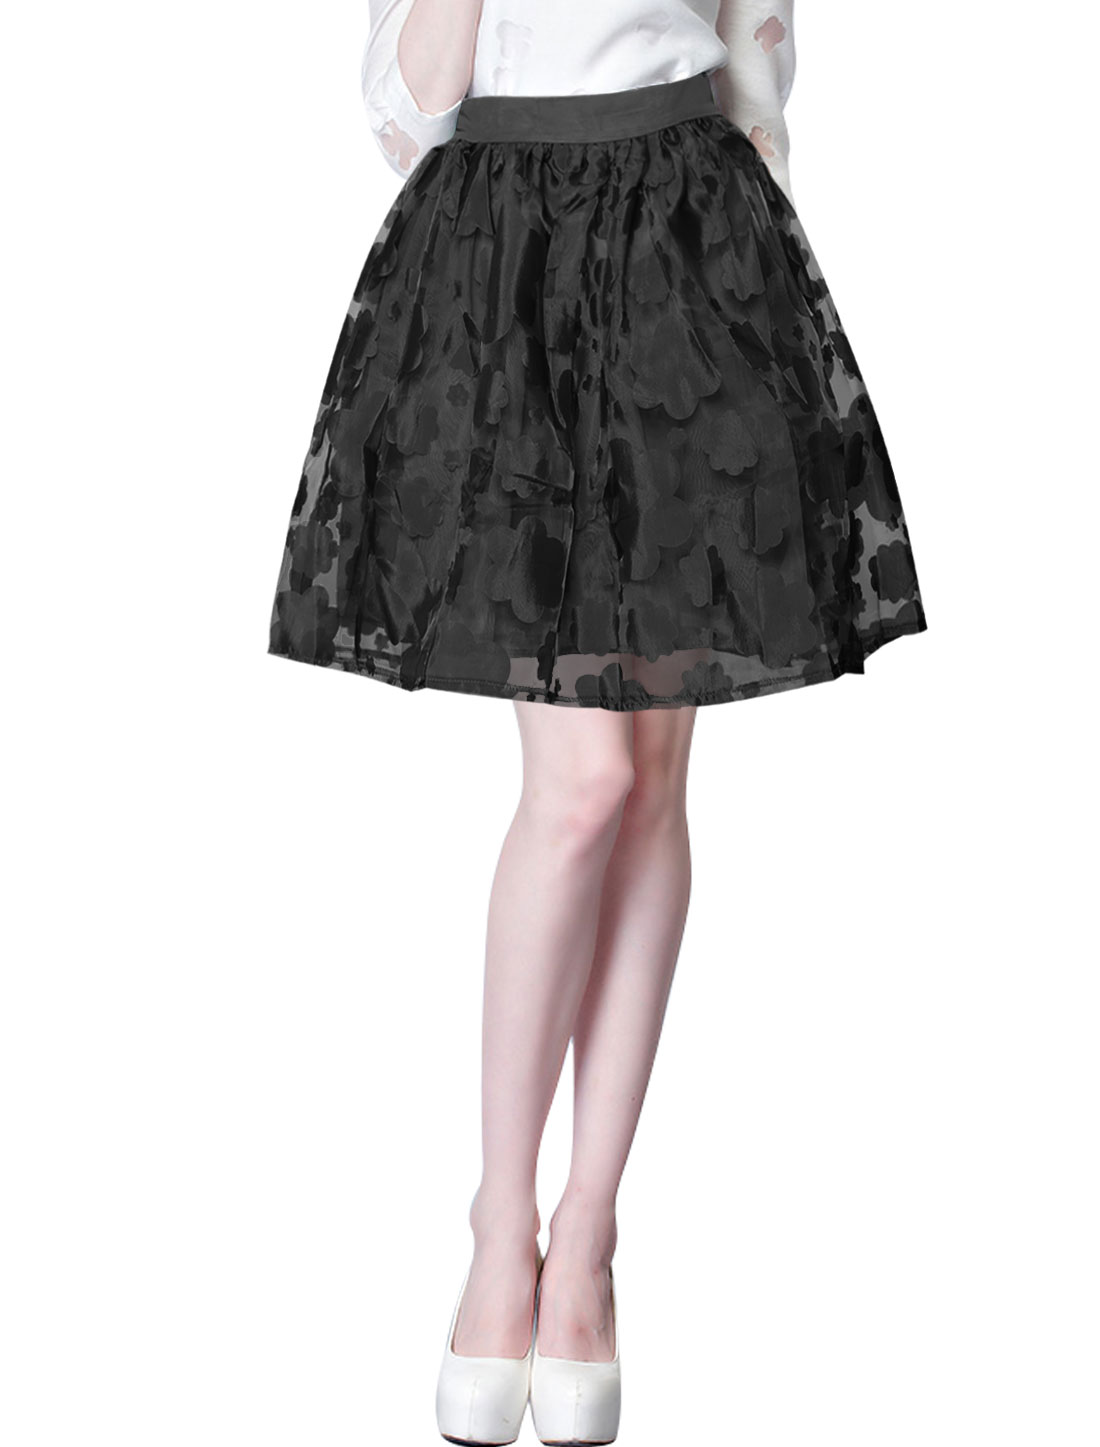 Ladies Floral Design Stretchy Waist Back Full Lining Organza Skirt Black S